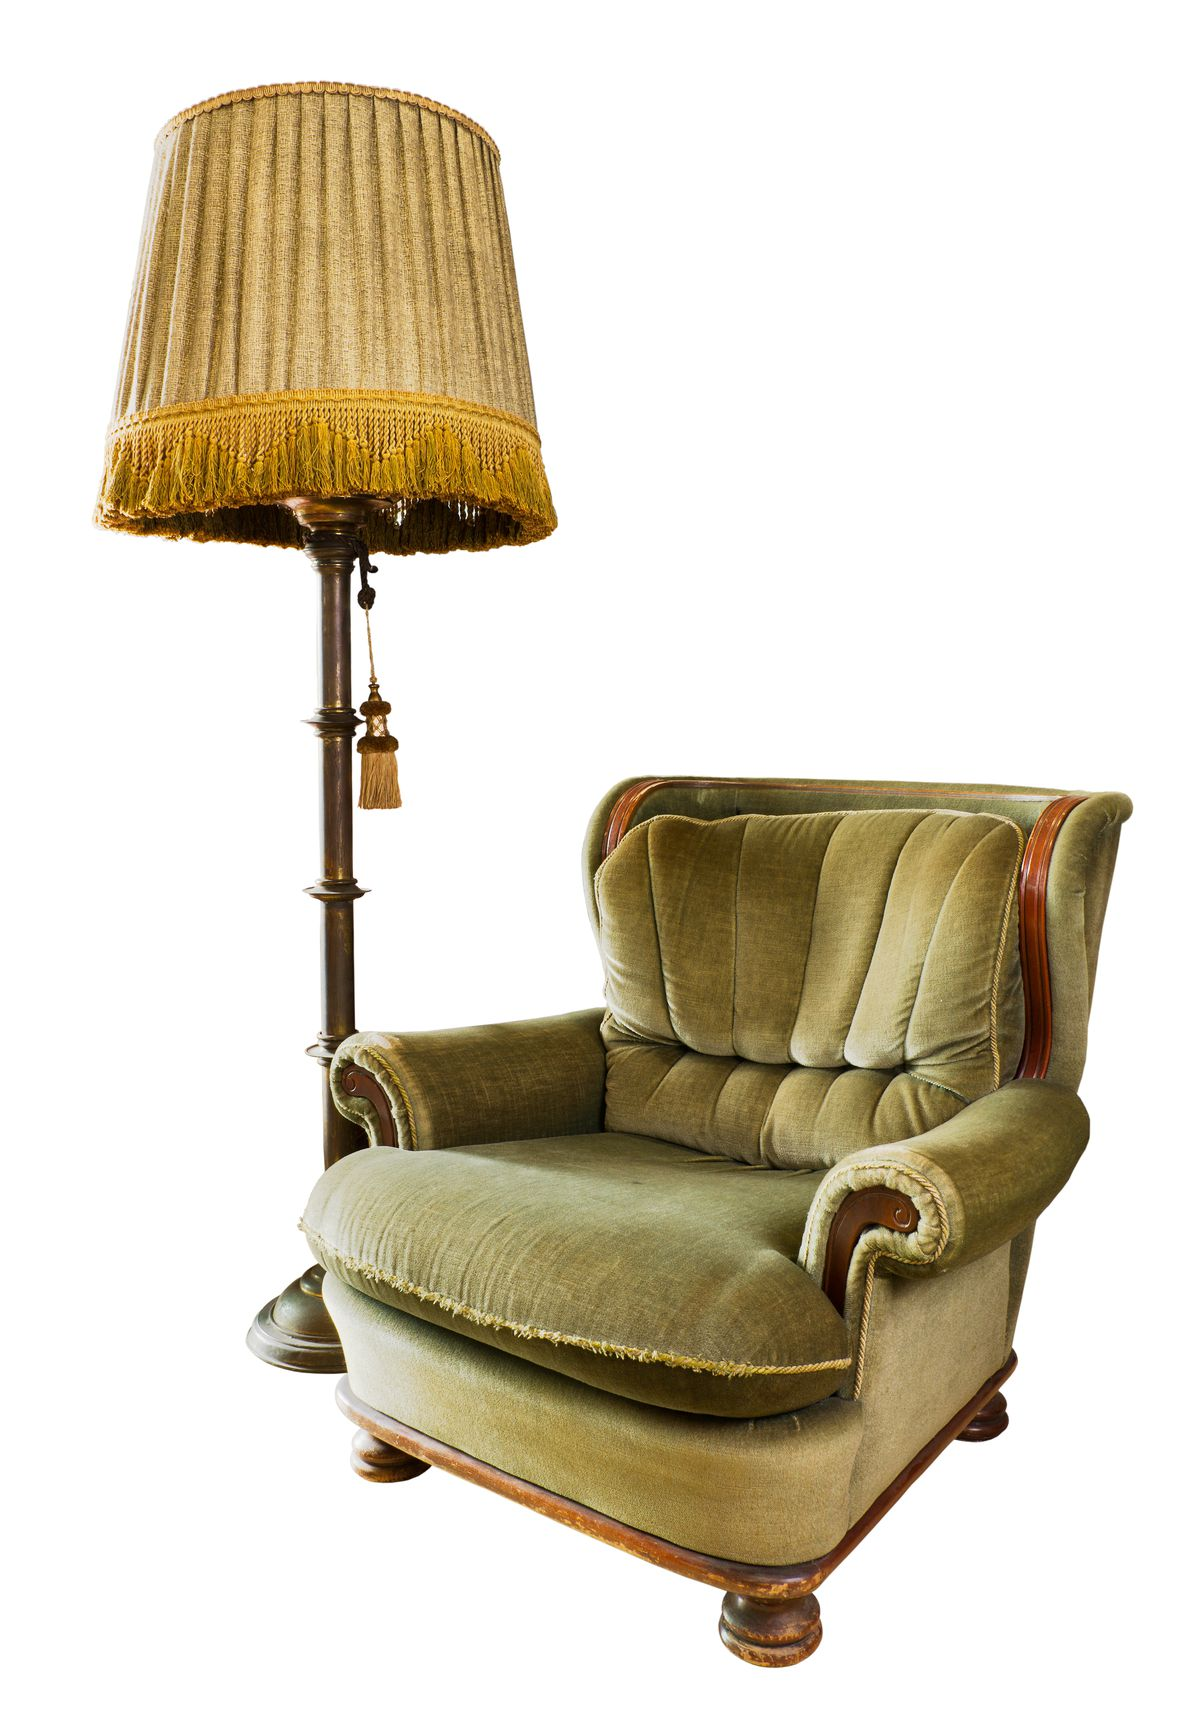 Cutout photo of an old upholstered armchair and a floor lamp with a large, fringed shade.